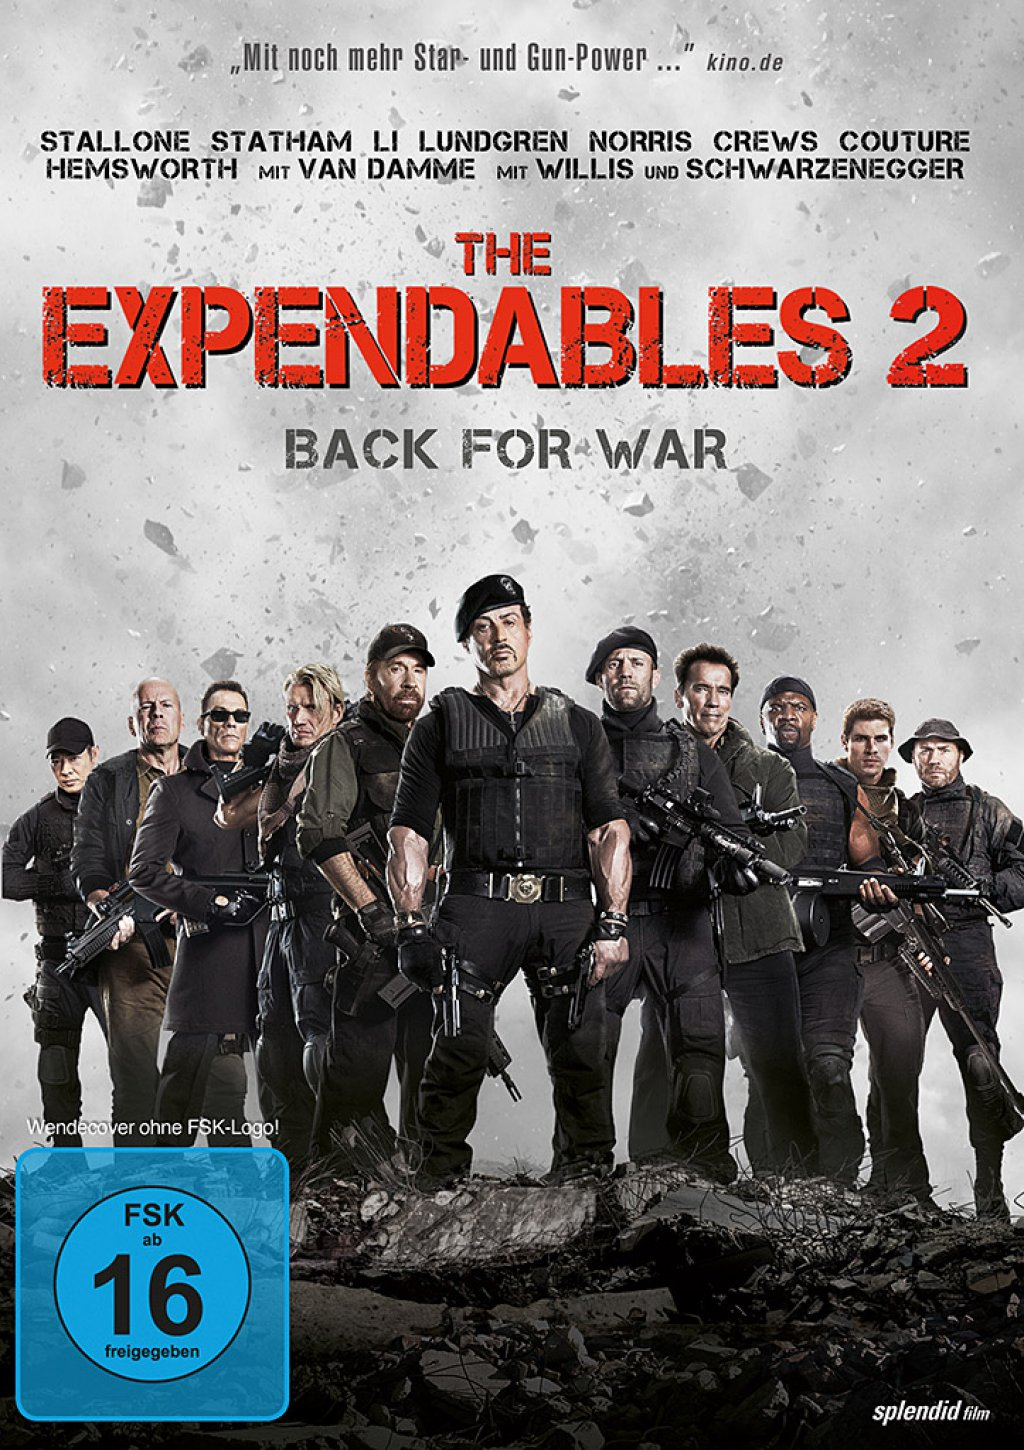 The Expendables 2 - Back For War (DVD)